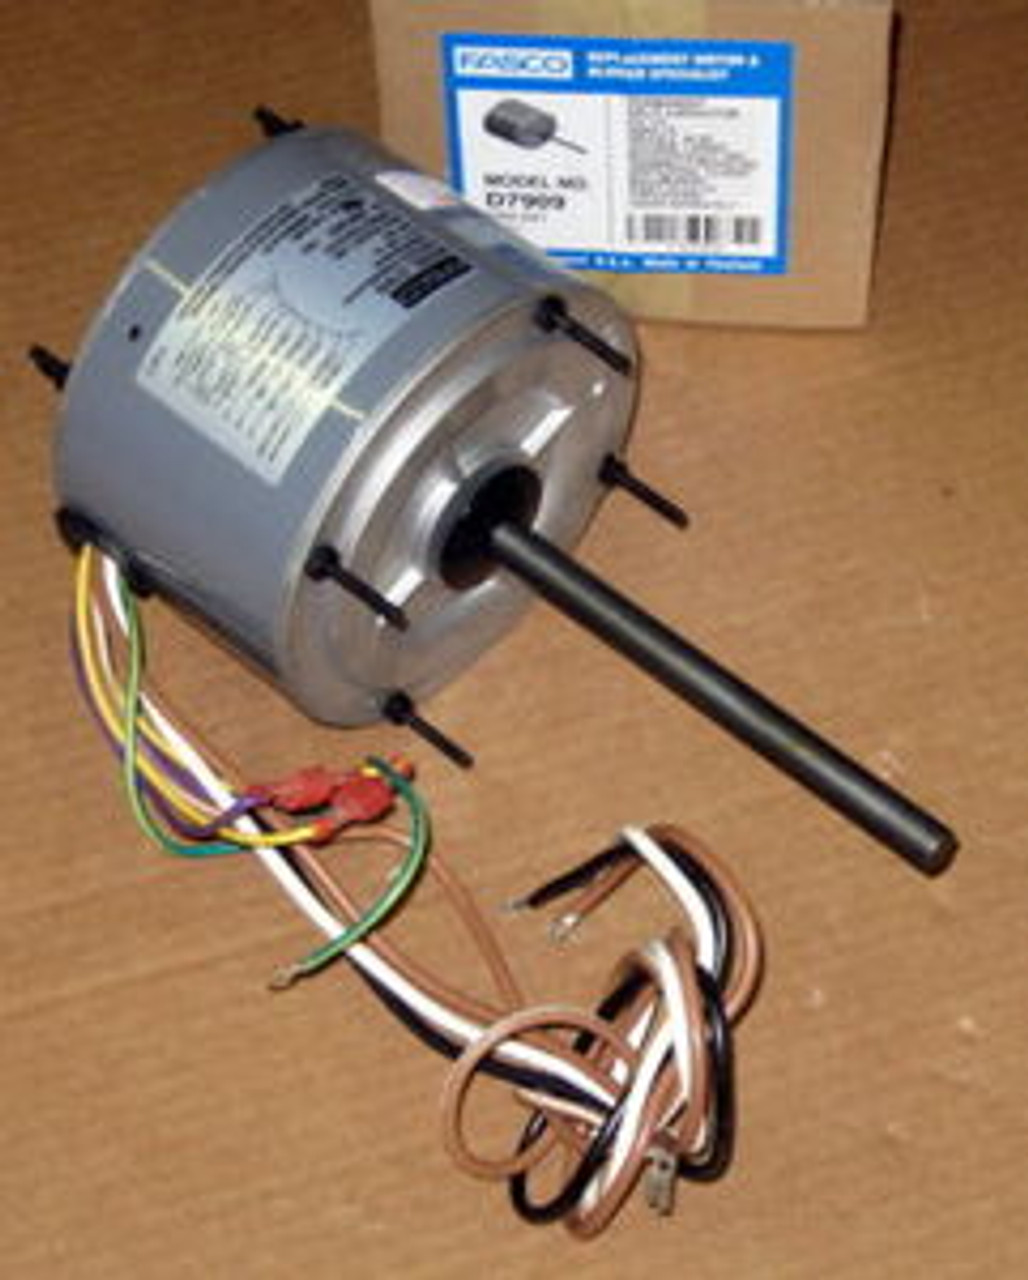 D7909 Fasco 1/4 HP 1075 RPM Air Conditioner Heat Pump Condenser Fan Motor  TENV - McCombs Supply Co IncMcCombs Supply